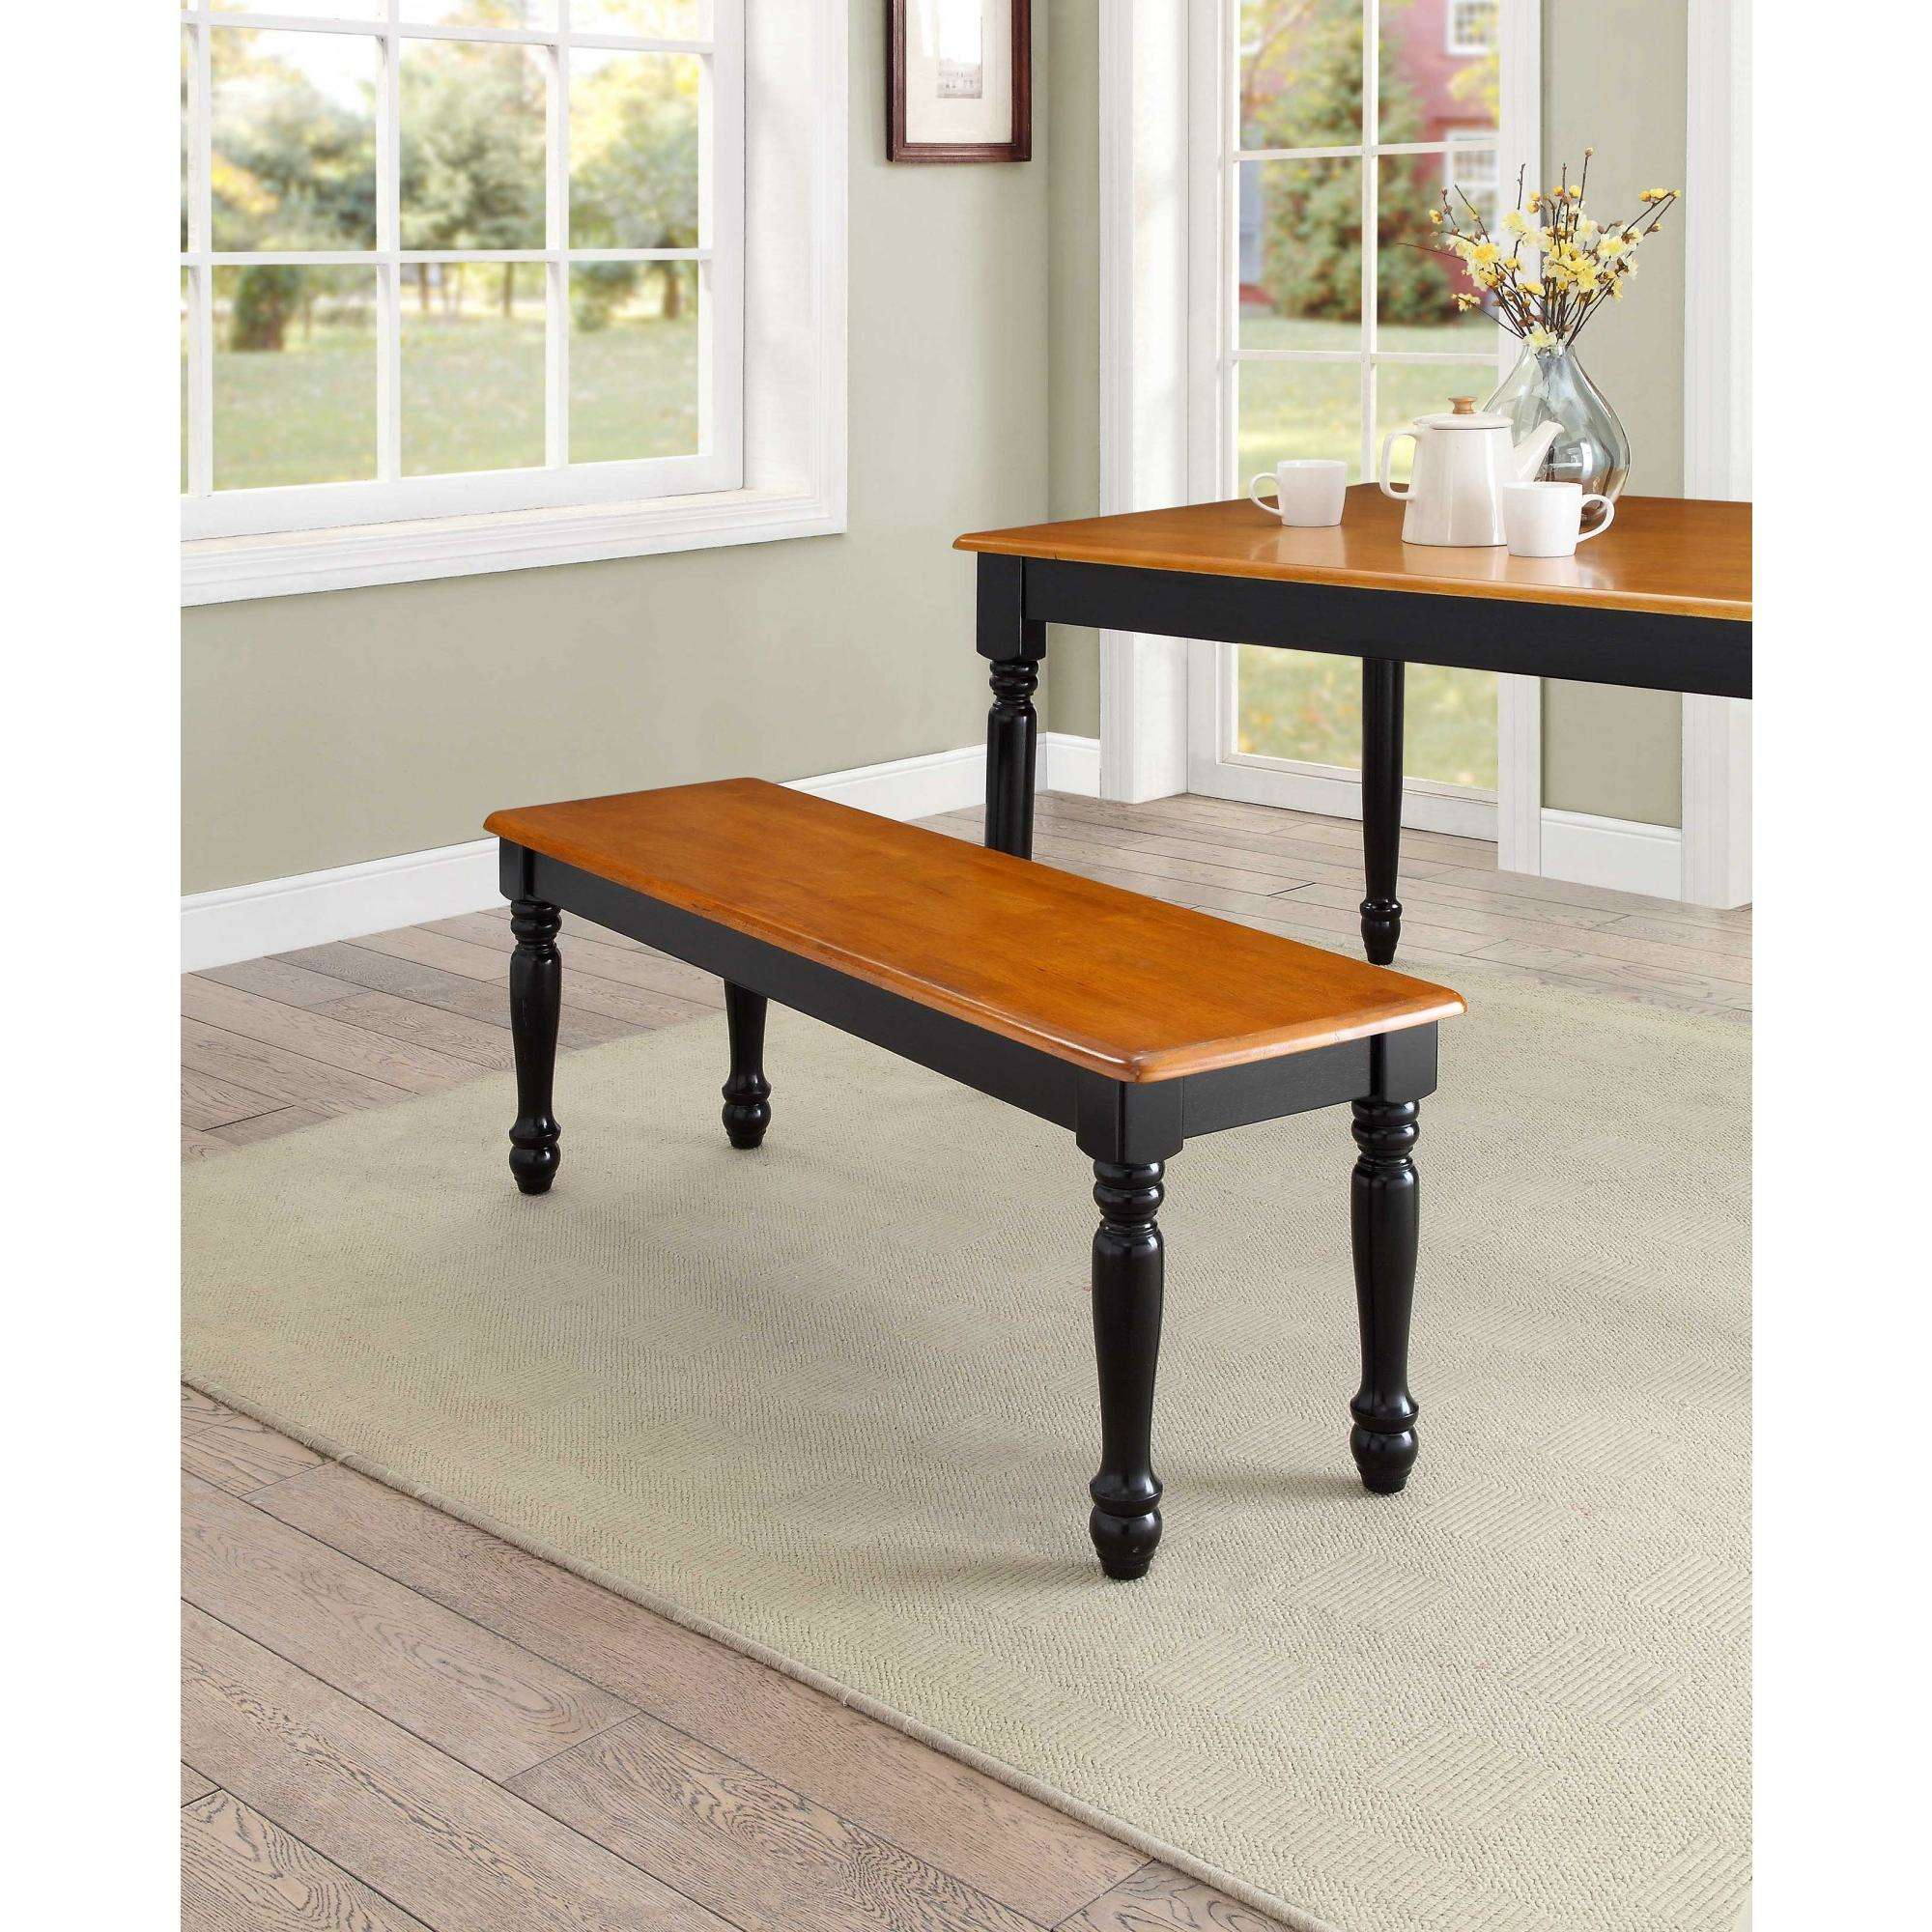 Better Homes And Gardens Autumn Lane Farmhouse Solid Wood Dining Bench,  Black And Oak